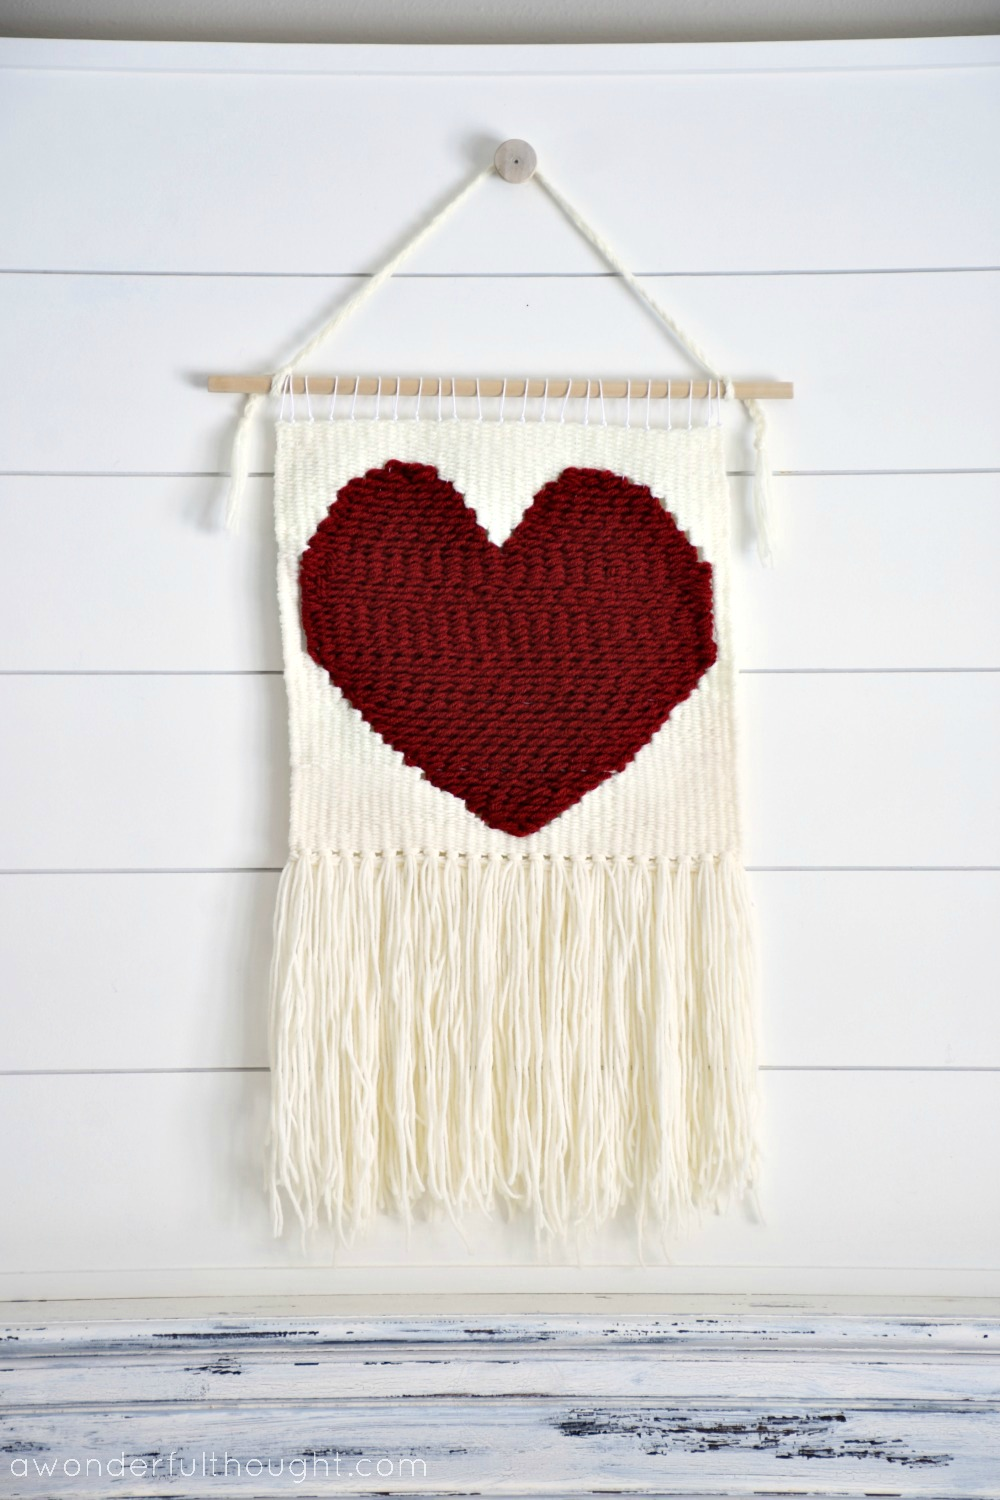 Simple Heart Weaving Wall Hanging - A Wonderful Thought